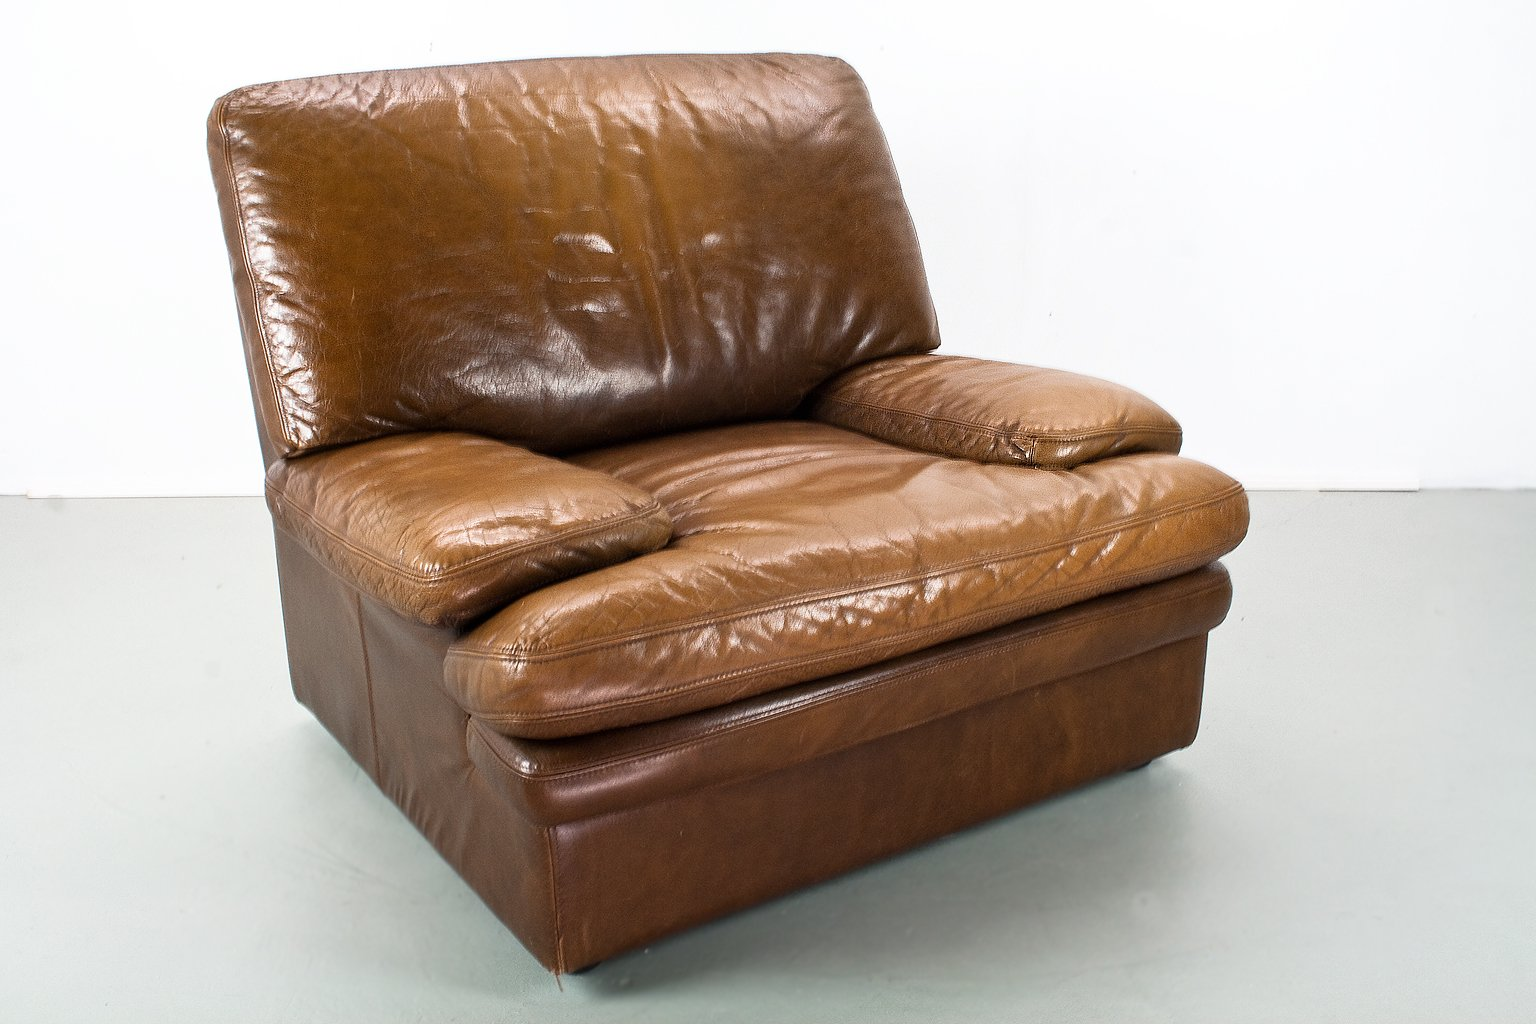 Vintage Leather Lounge Chair From Roche Bobois, 1960s